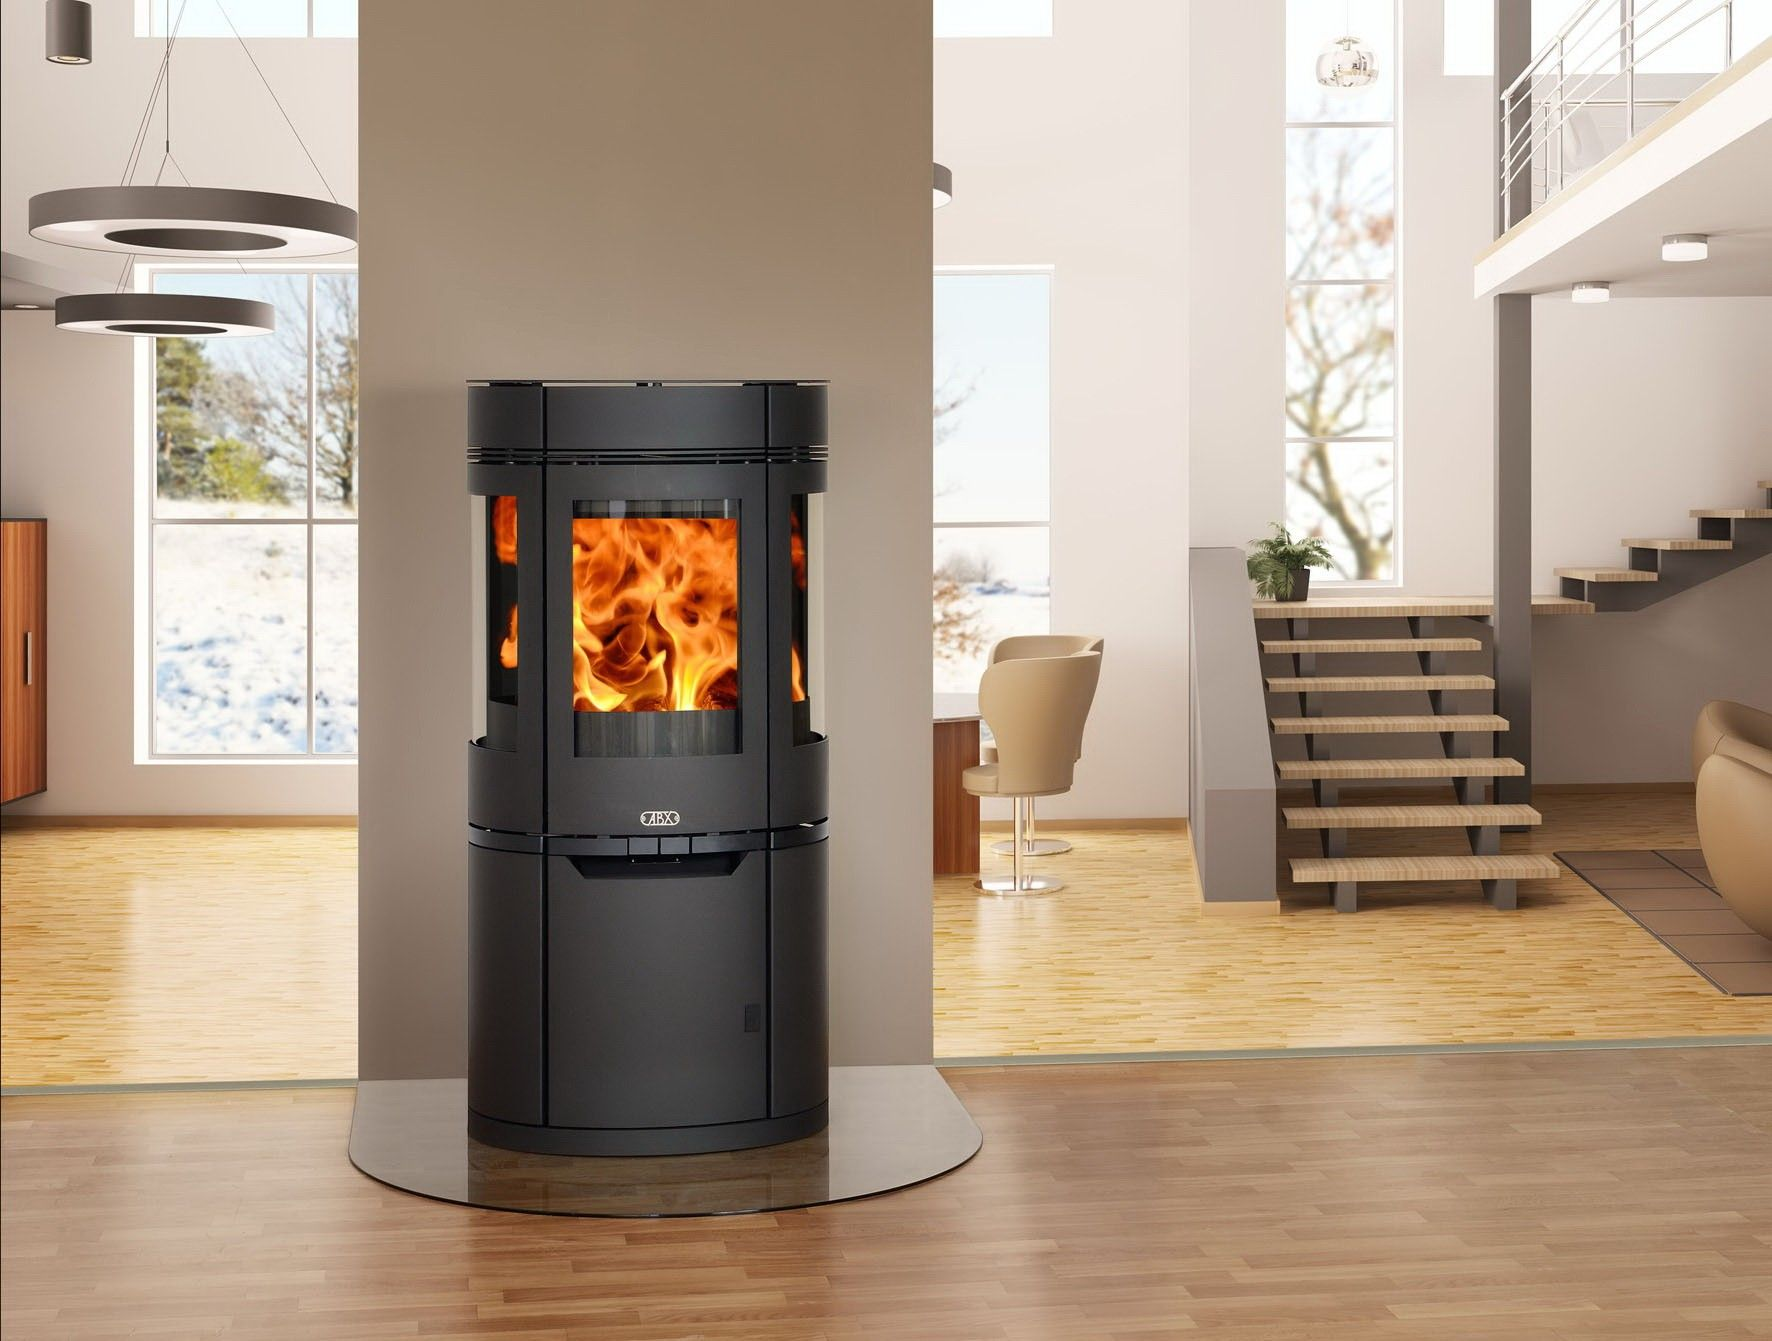 They Design Window Contemporary Wood Burning Stove Intended For Wood  Burning Stoves Heating Homes With Wood Burning Stoves